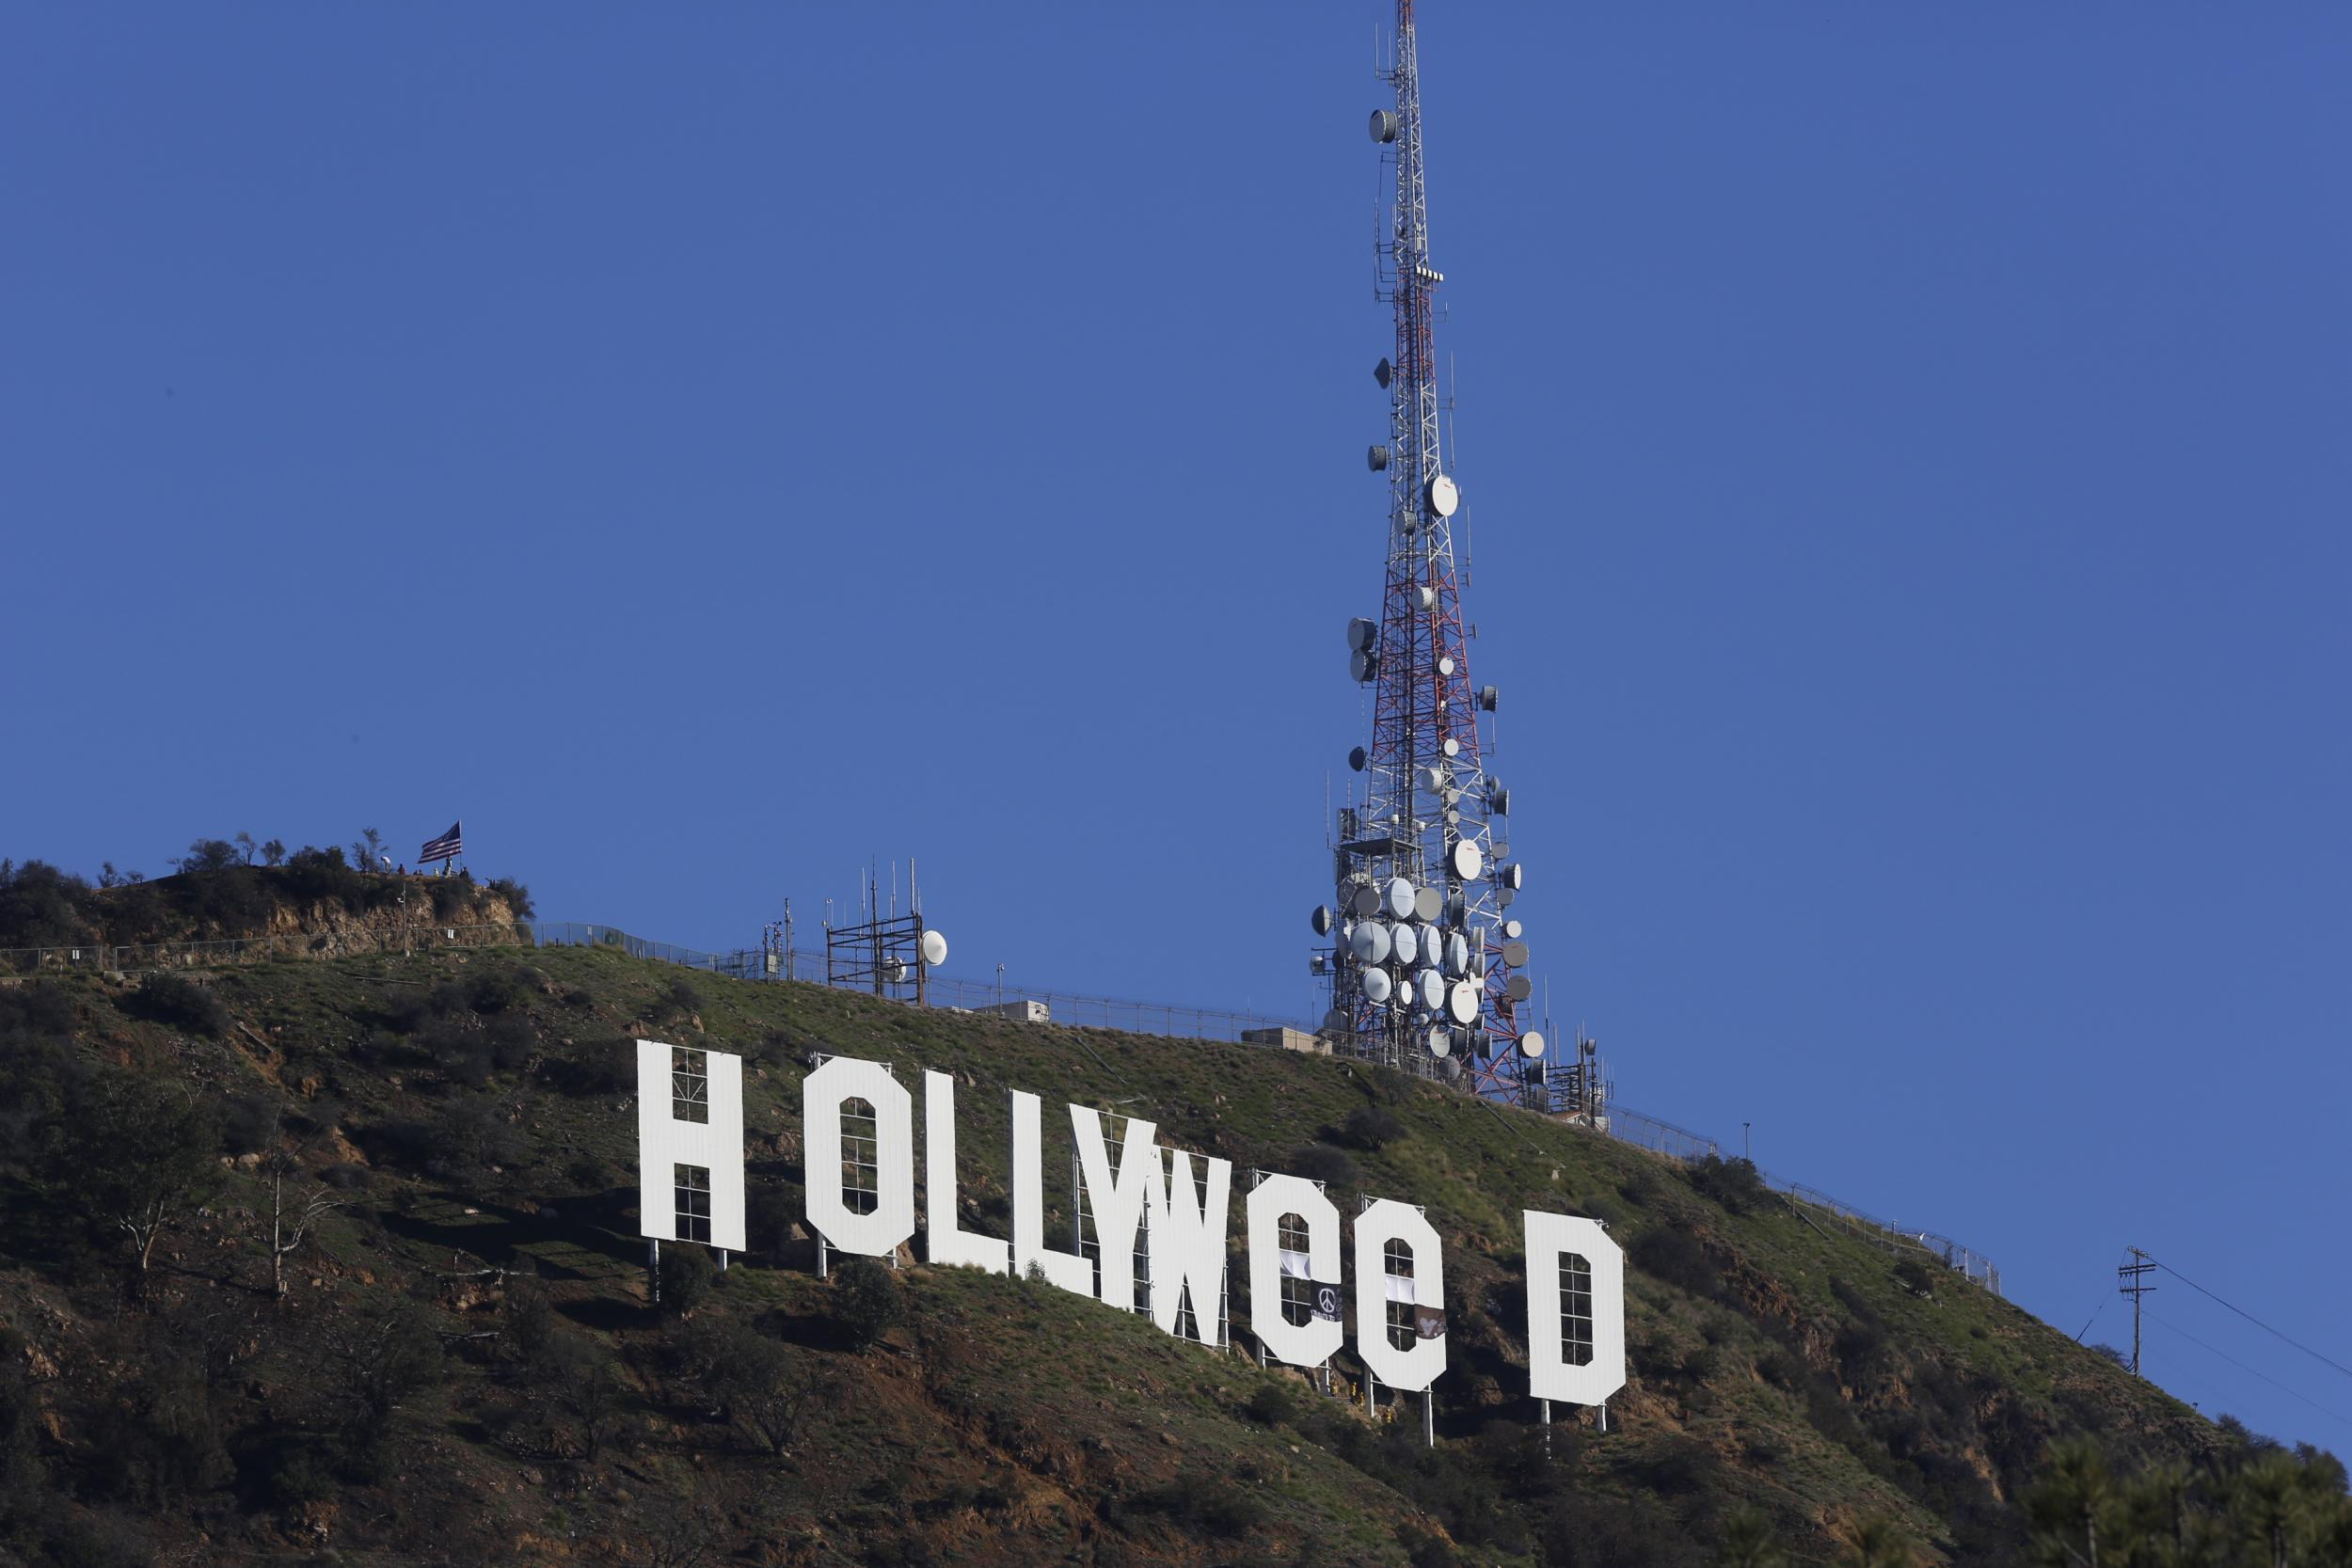 Hollywood Sign Changed To Hollyweed To Promote Cannabis